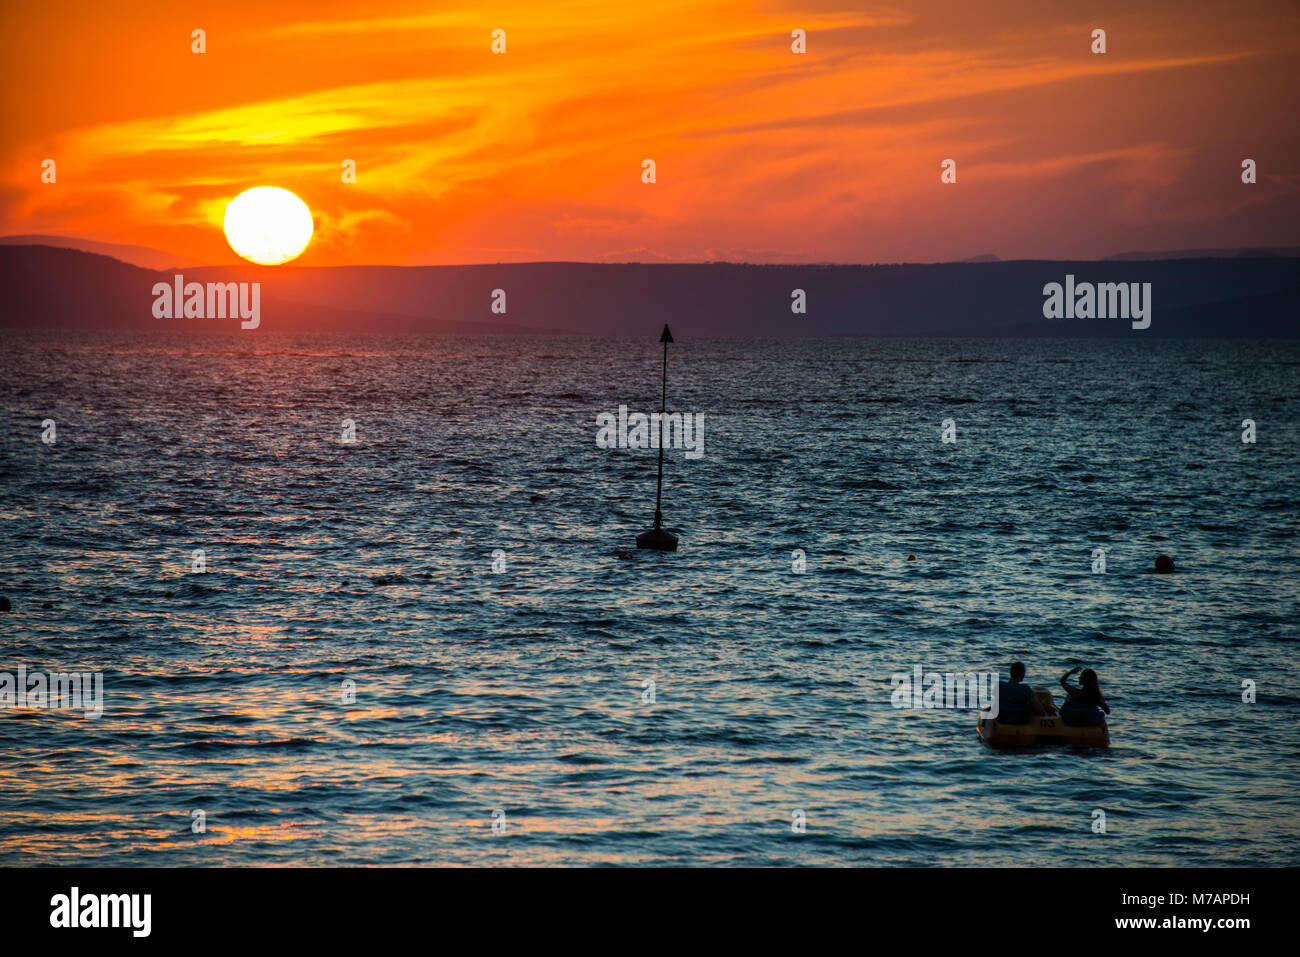 Sunset over the Amur river in Vladivostok, Russia - Stock Image